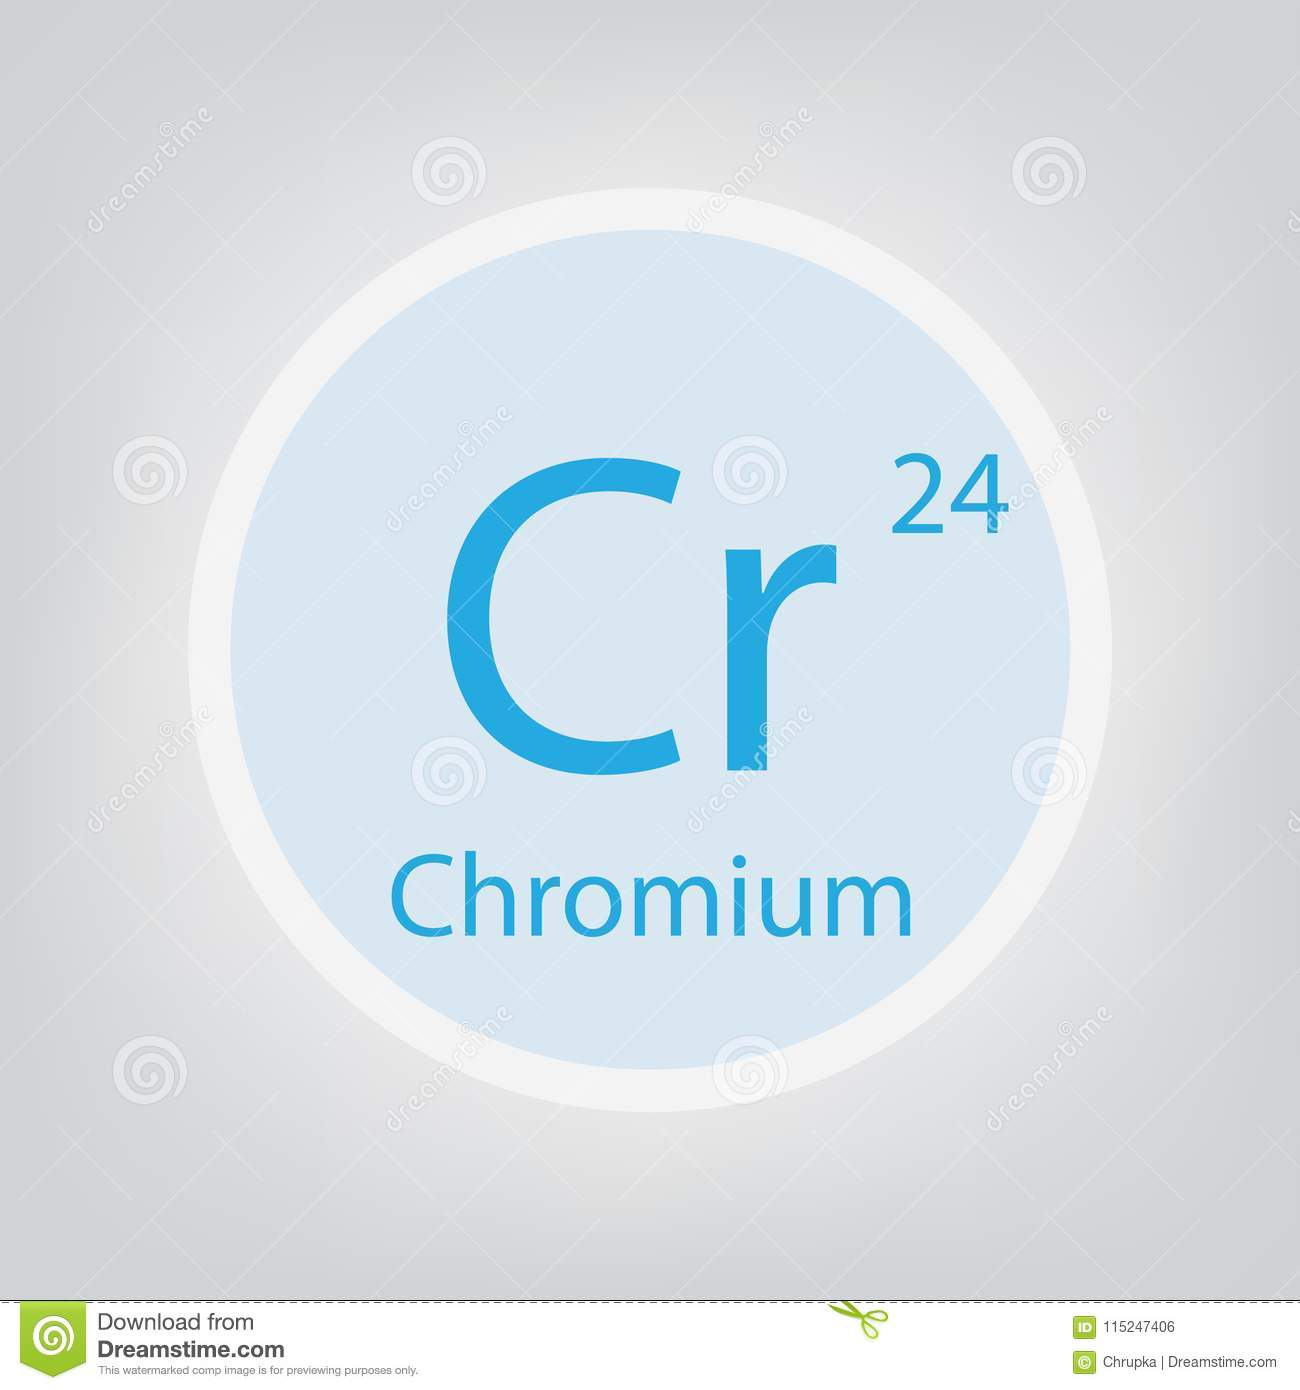 Chromium Cr Chemical Element Icon Stock Vector Illustration Of